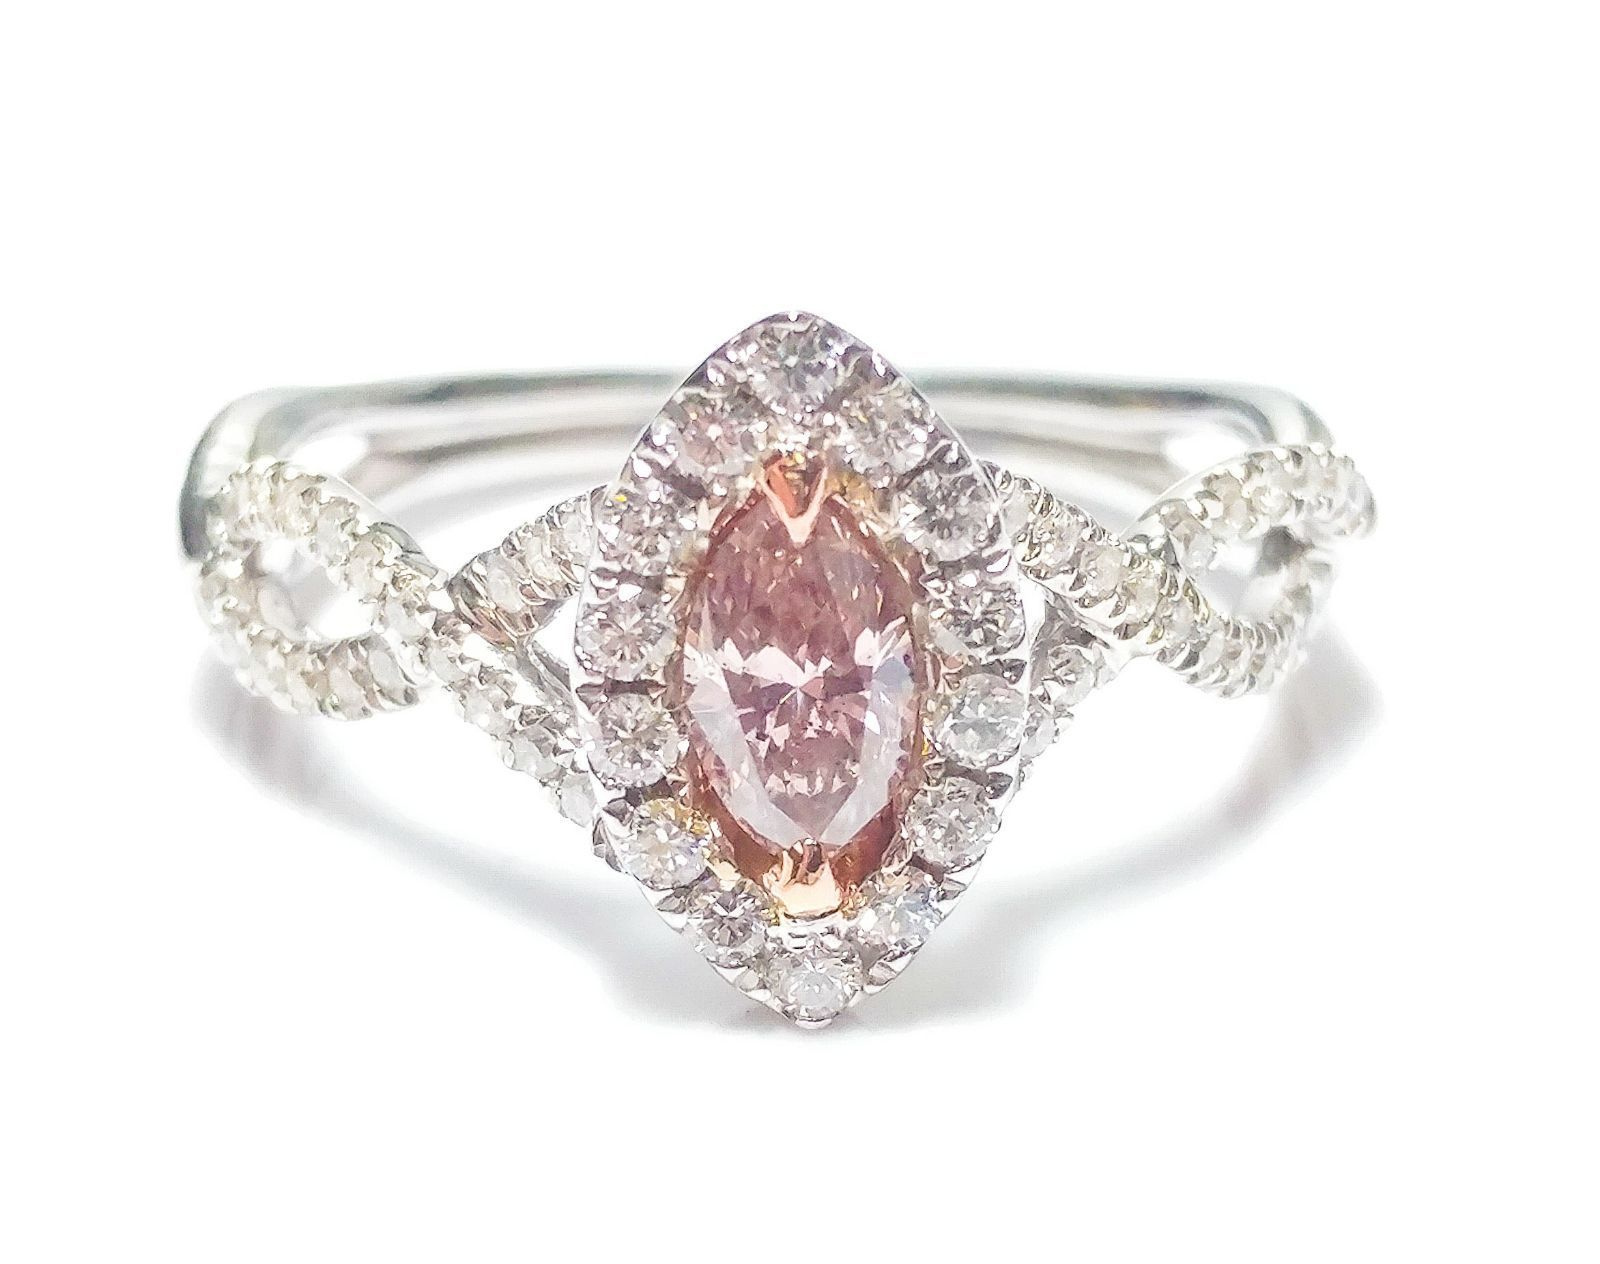 hole top front a gia pink center rings jackson stone diamond ring products wedding collections ct carat jewelry